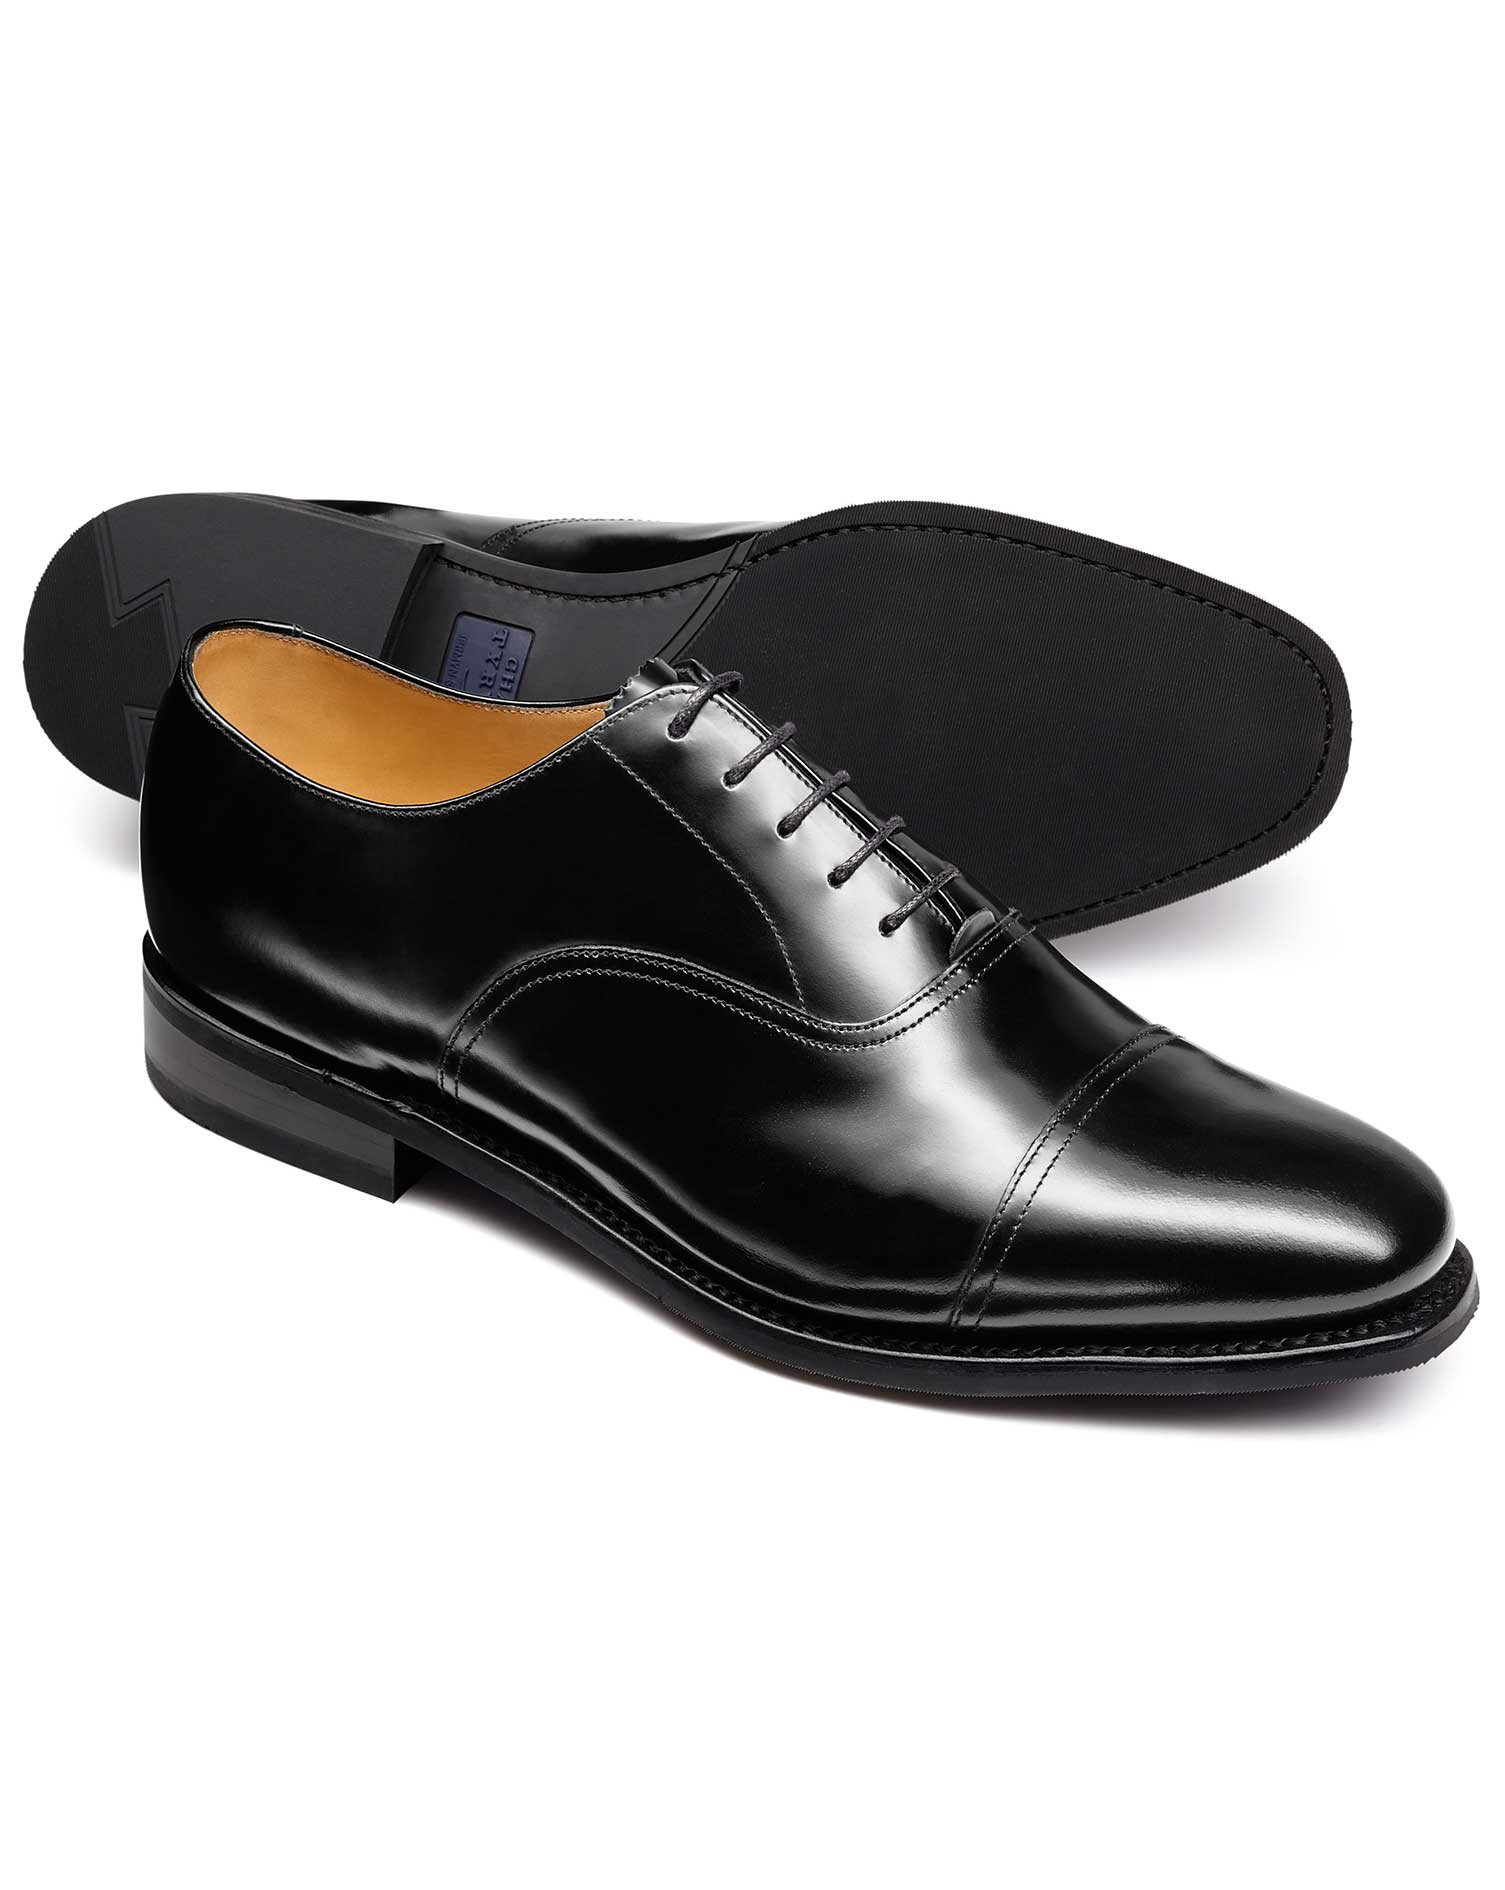 Black Goodyear Welted Oxford Rubber Sole Shoe Size 12 R by Charles Tyrwhitt